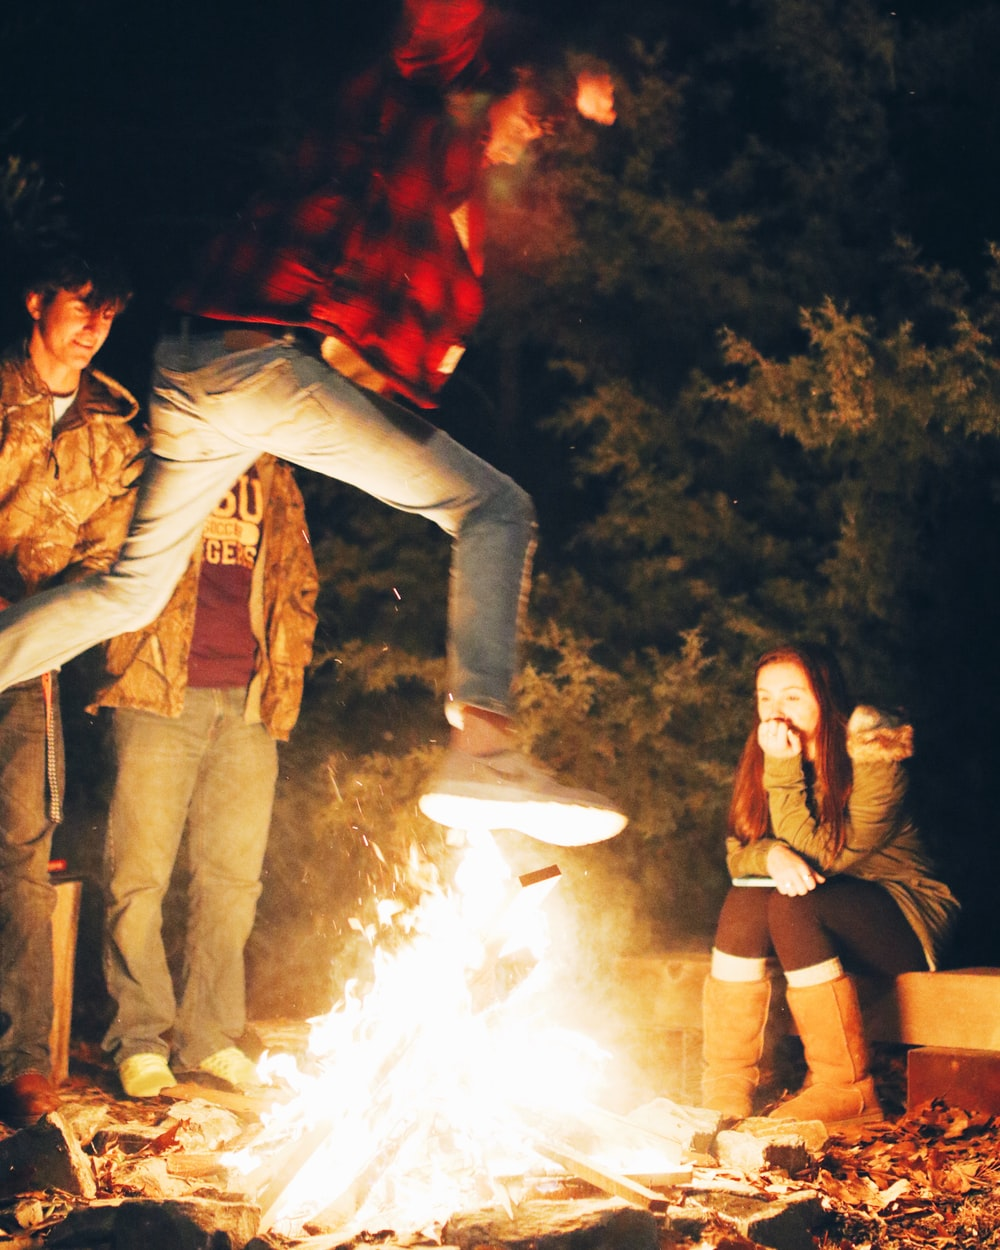 man wearing red and black checked shirt jumping near bonfire